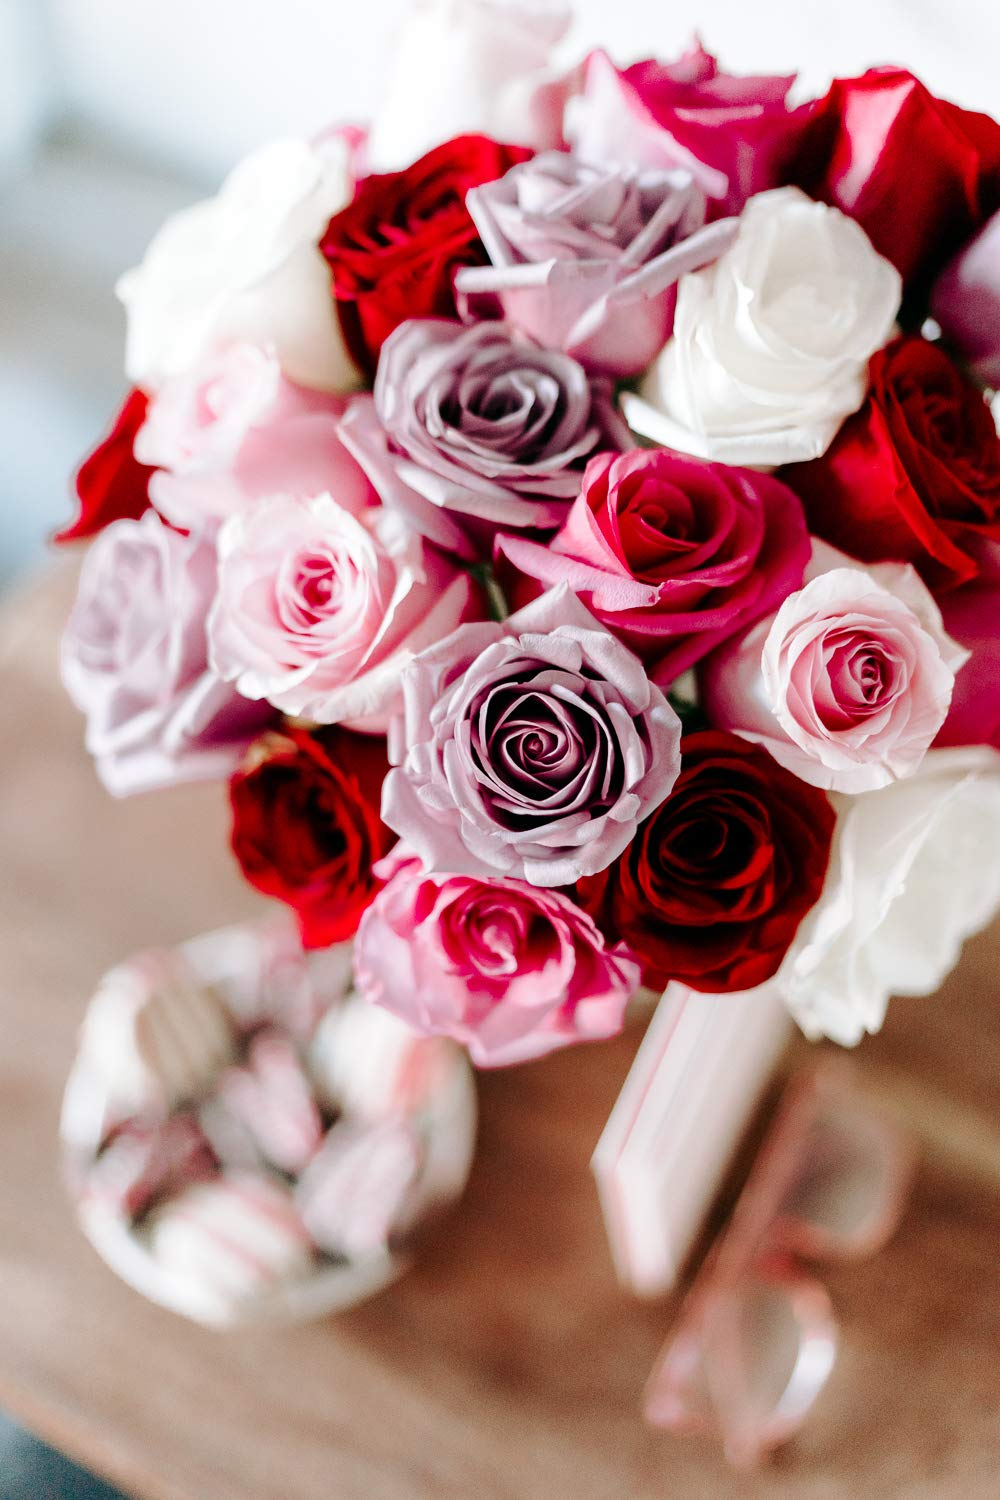 Flowers - 2 Dozen Roses in Red, Pink, Purple & White (Free Vase Included) by From You Flowers (Image #1)